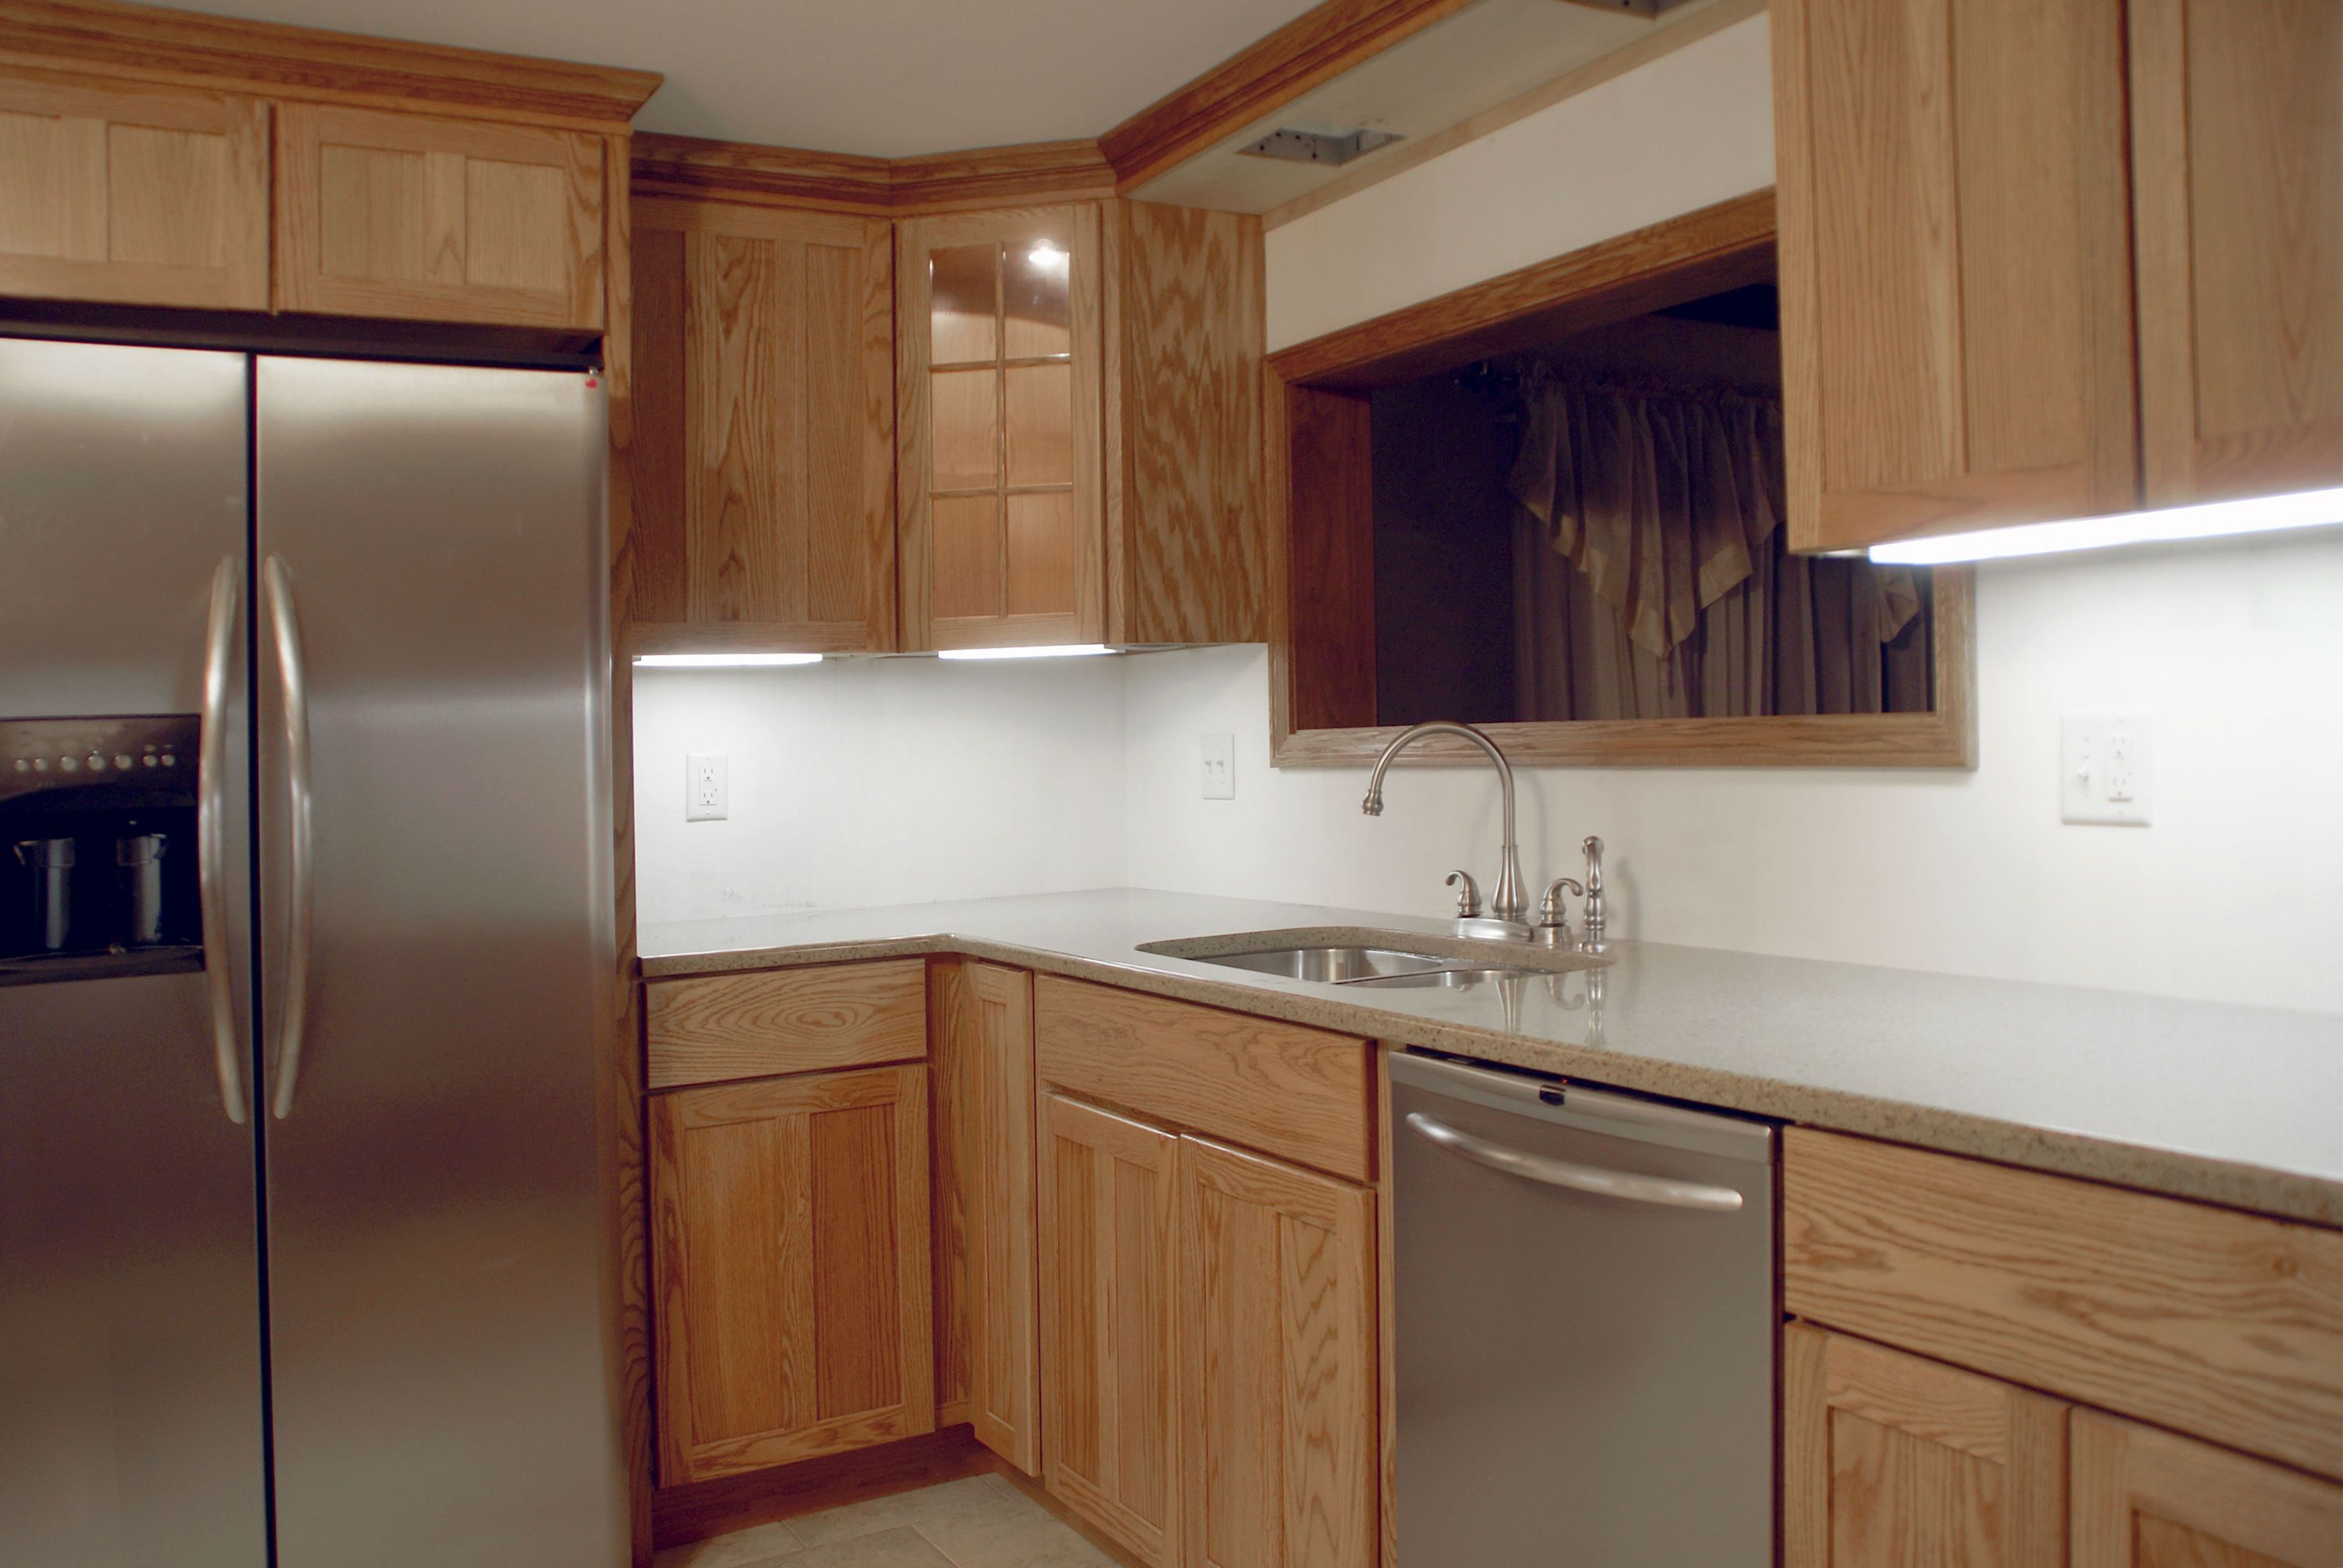 kitchen_wall_cabinet 94096625 5887da8d5f9b58bdb39910dd